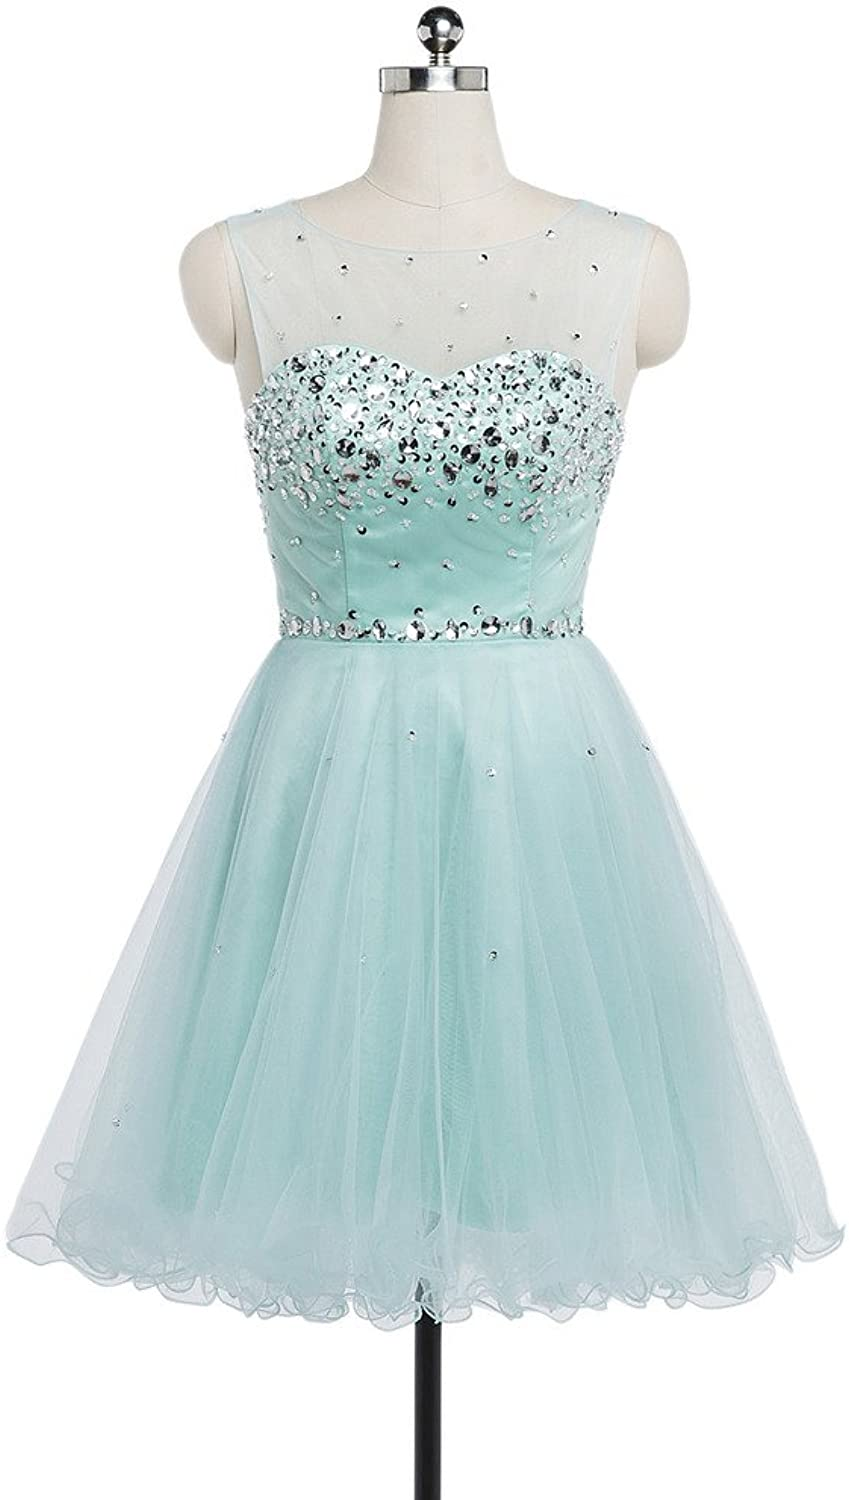 CharmingBridal A Line Scoop Sleeveless Short Prom Party Homecoming Dress